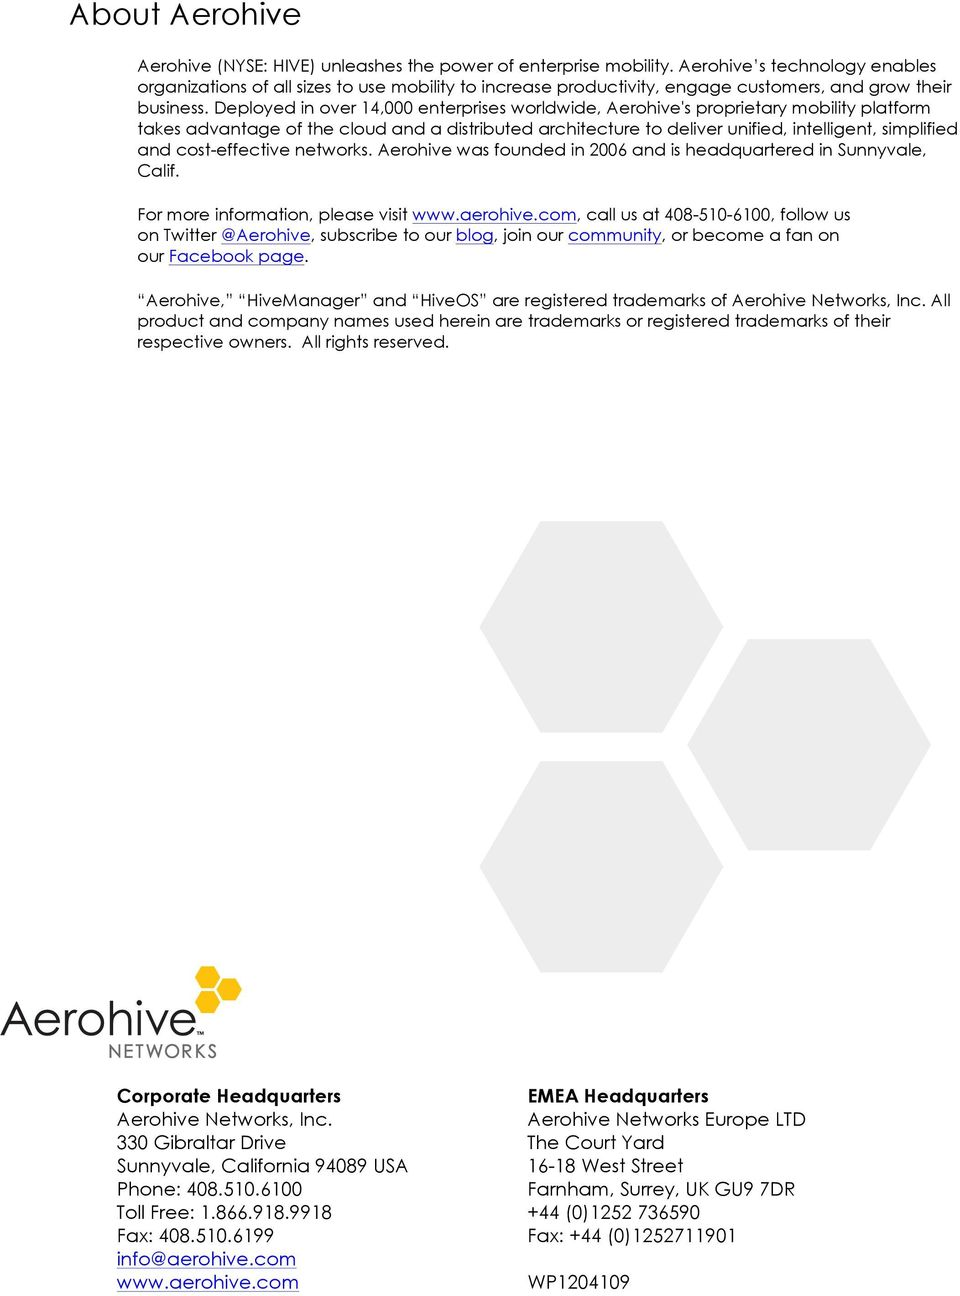 Deployed in over 14,000 enterprises worldwide, Aerohive's proprietary mobility platform takes advantage of the cloud and a distributed architecture to deliver unified, intelligent, simplified and